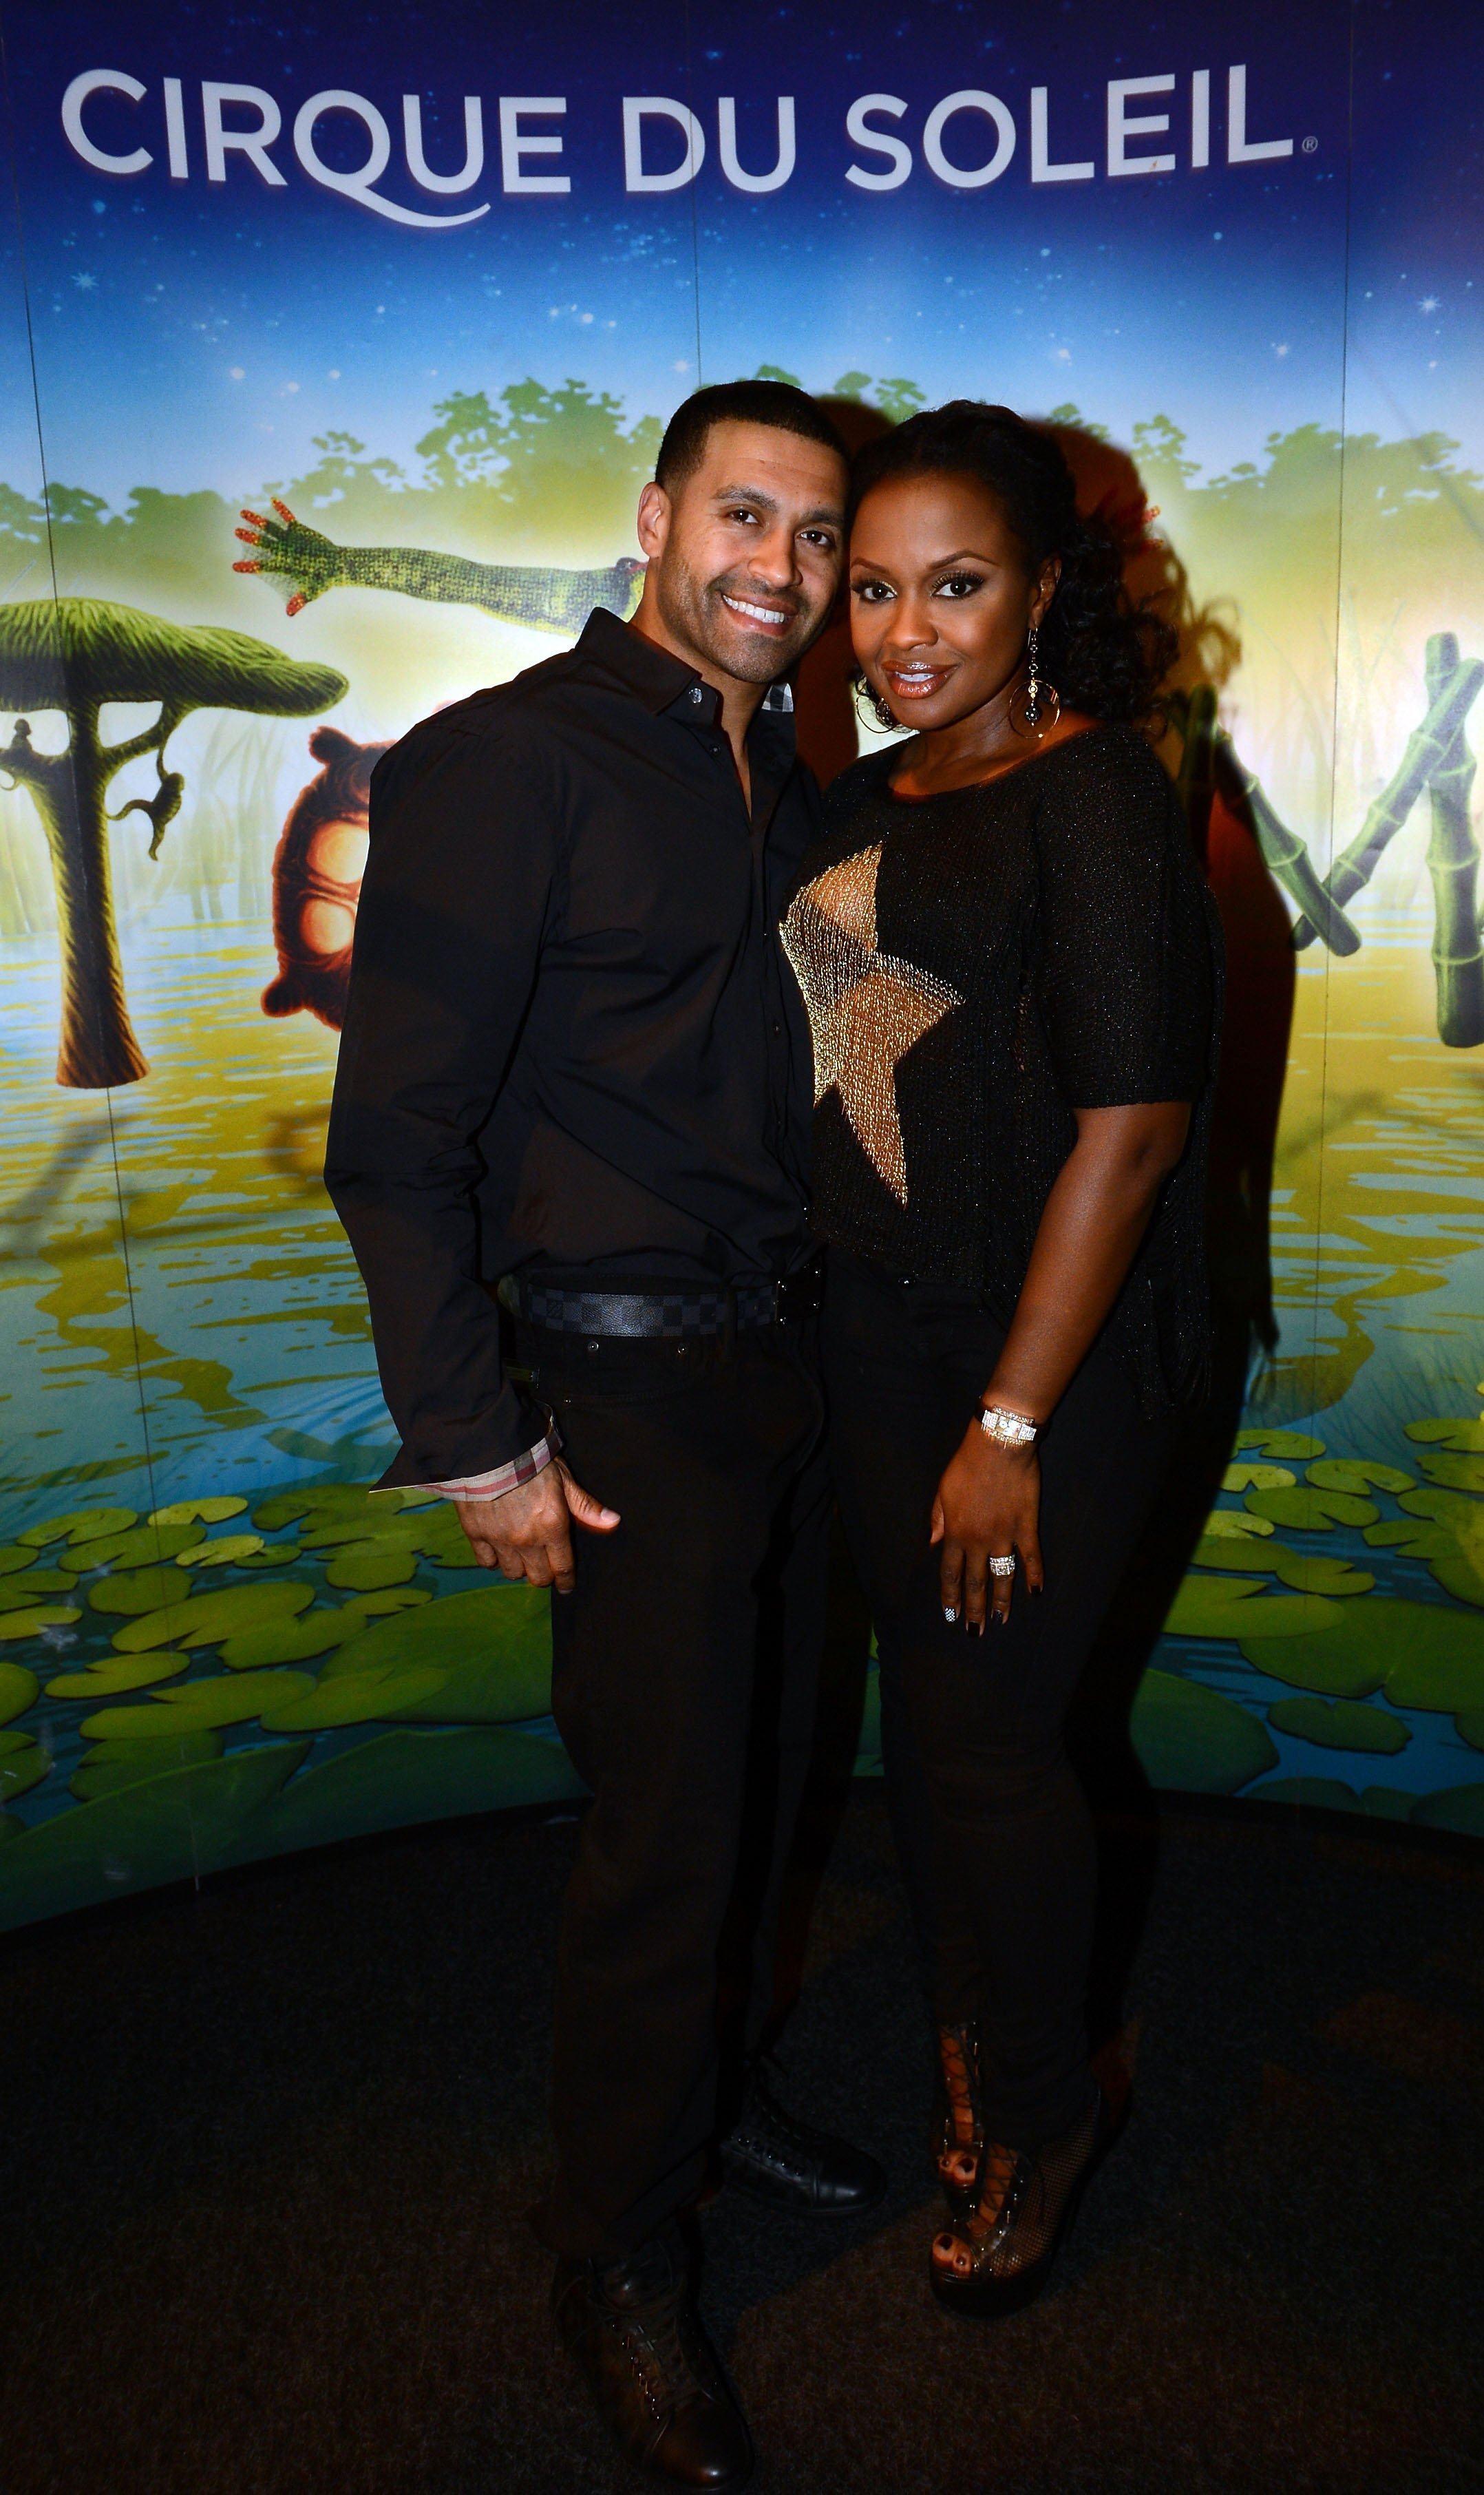 Phaedra Parks and Apollo Nida attend Cirque du Soleil TOTEM Premiere on October 26, 2012 | Photo: GettyImages